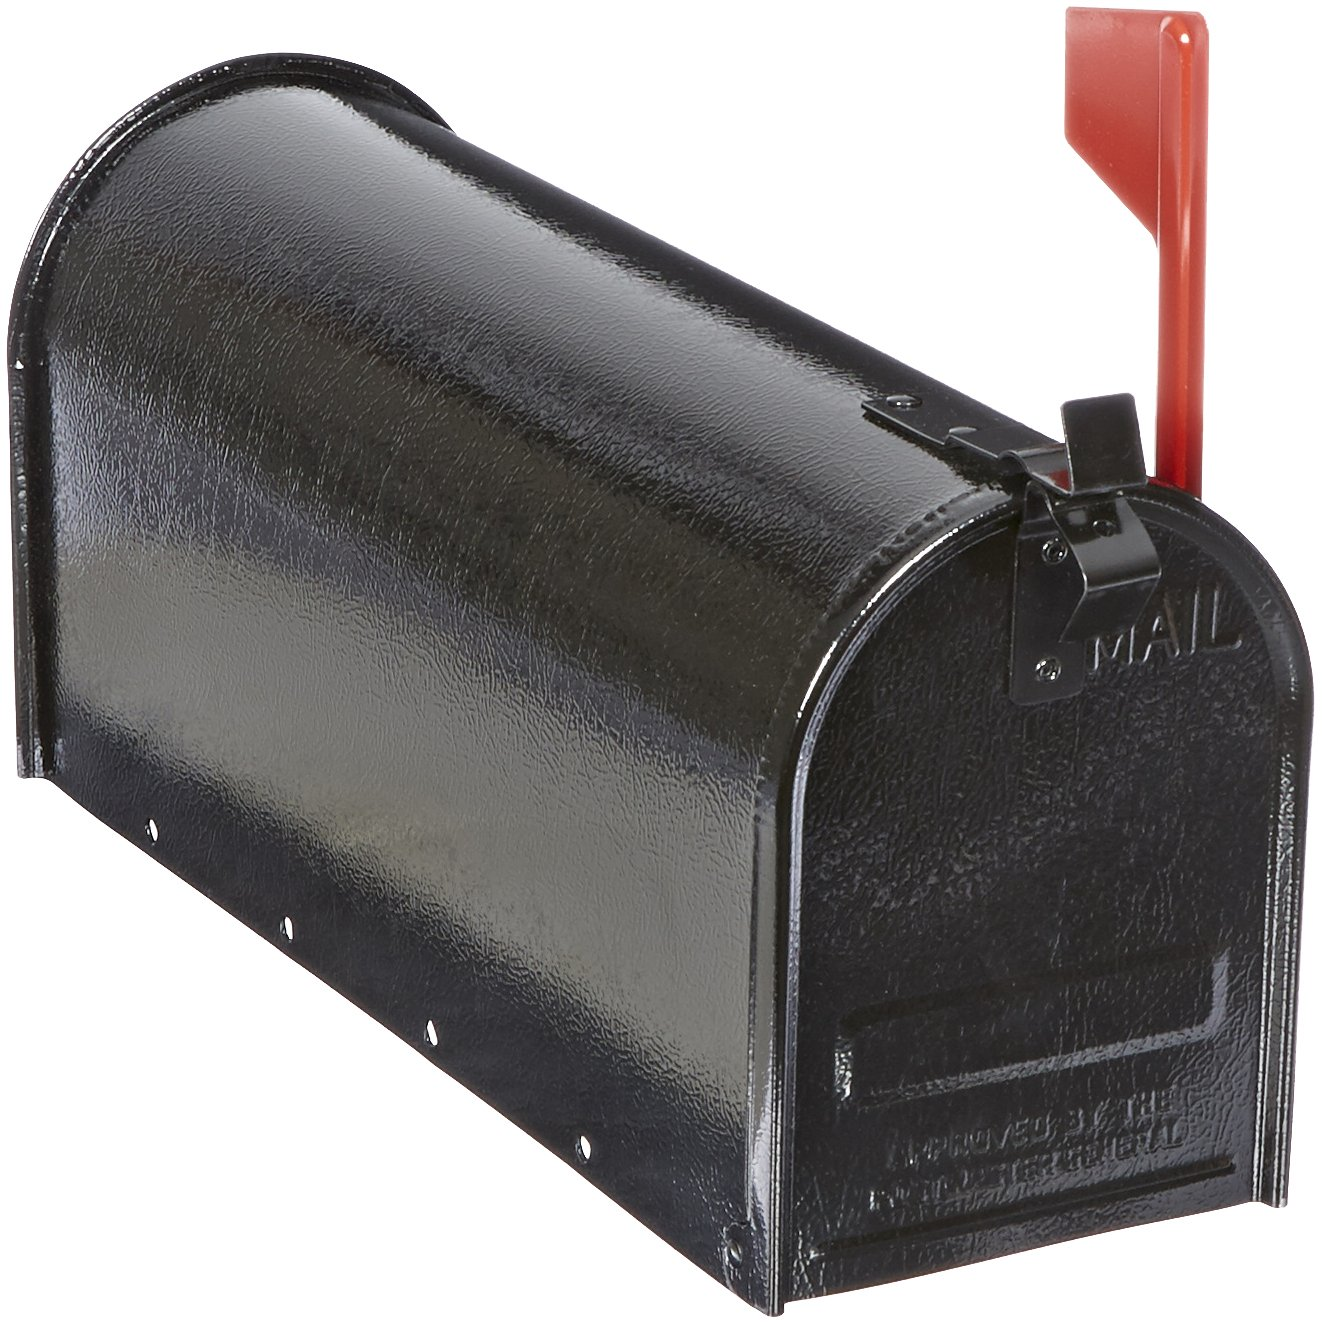 Tapco 034-00115 Steel Economy Mailbox, 19'' Length x 7'' Width x 9'' Height, Black by TAPCO (Traffic & Parking Control Co., Inc.)